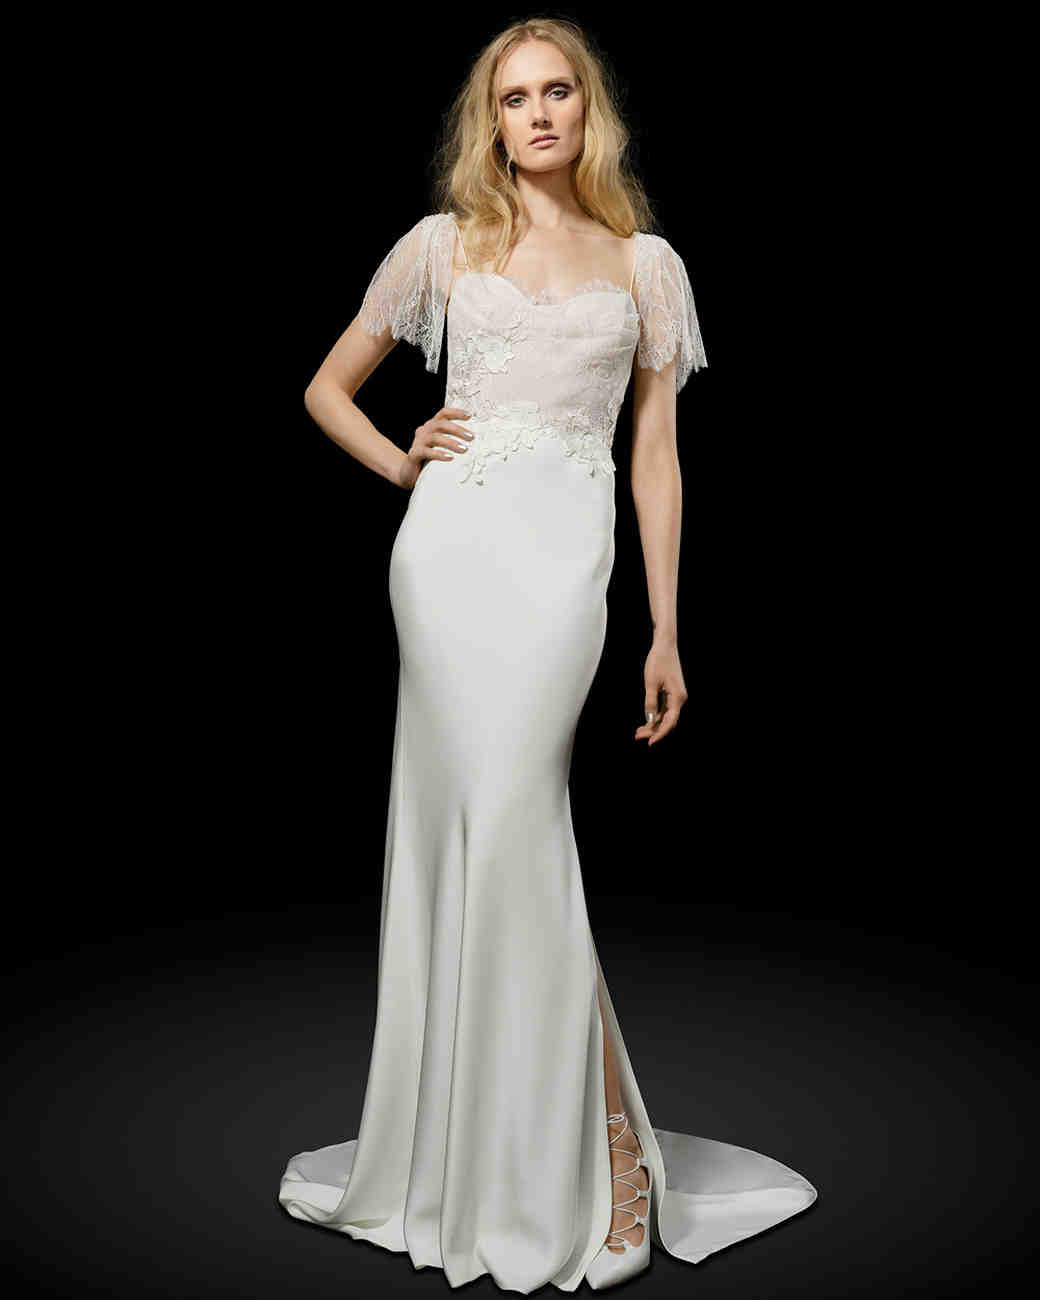 Elizabeth Fillmore simple lingerie-inspired wedding dress